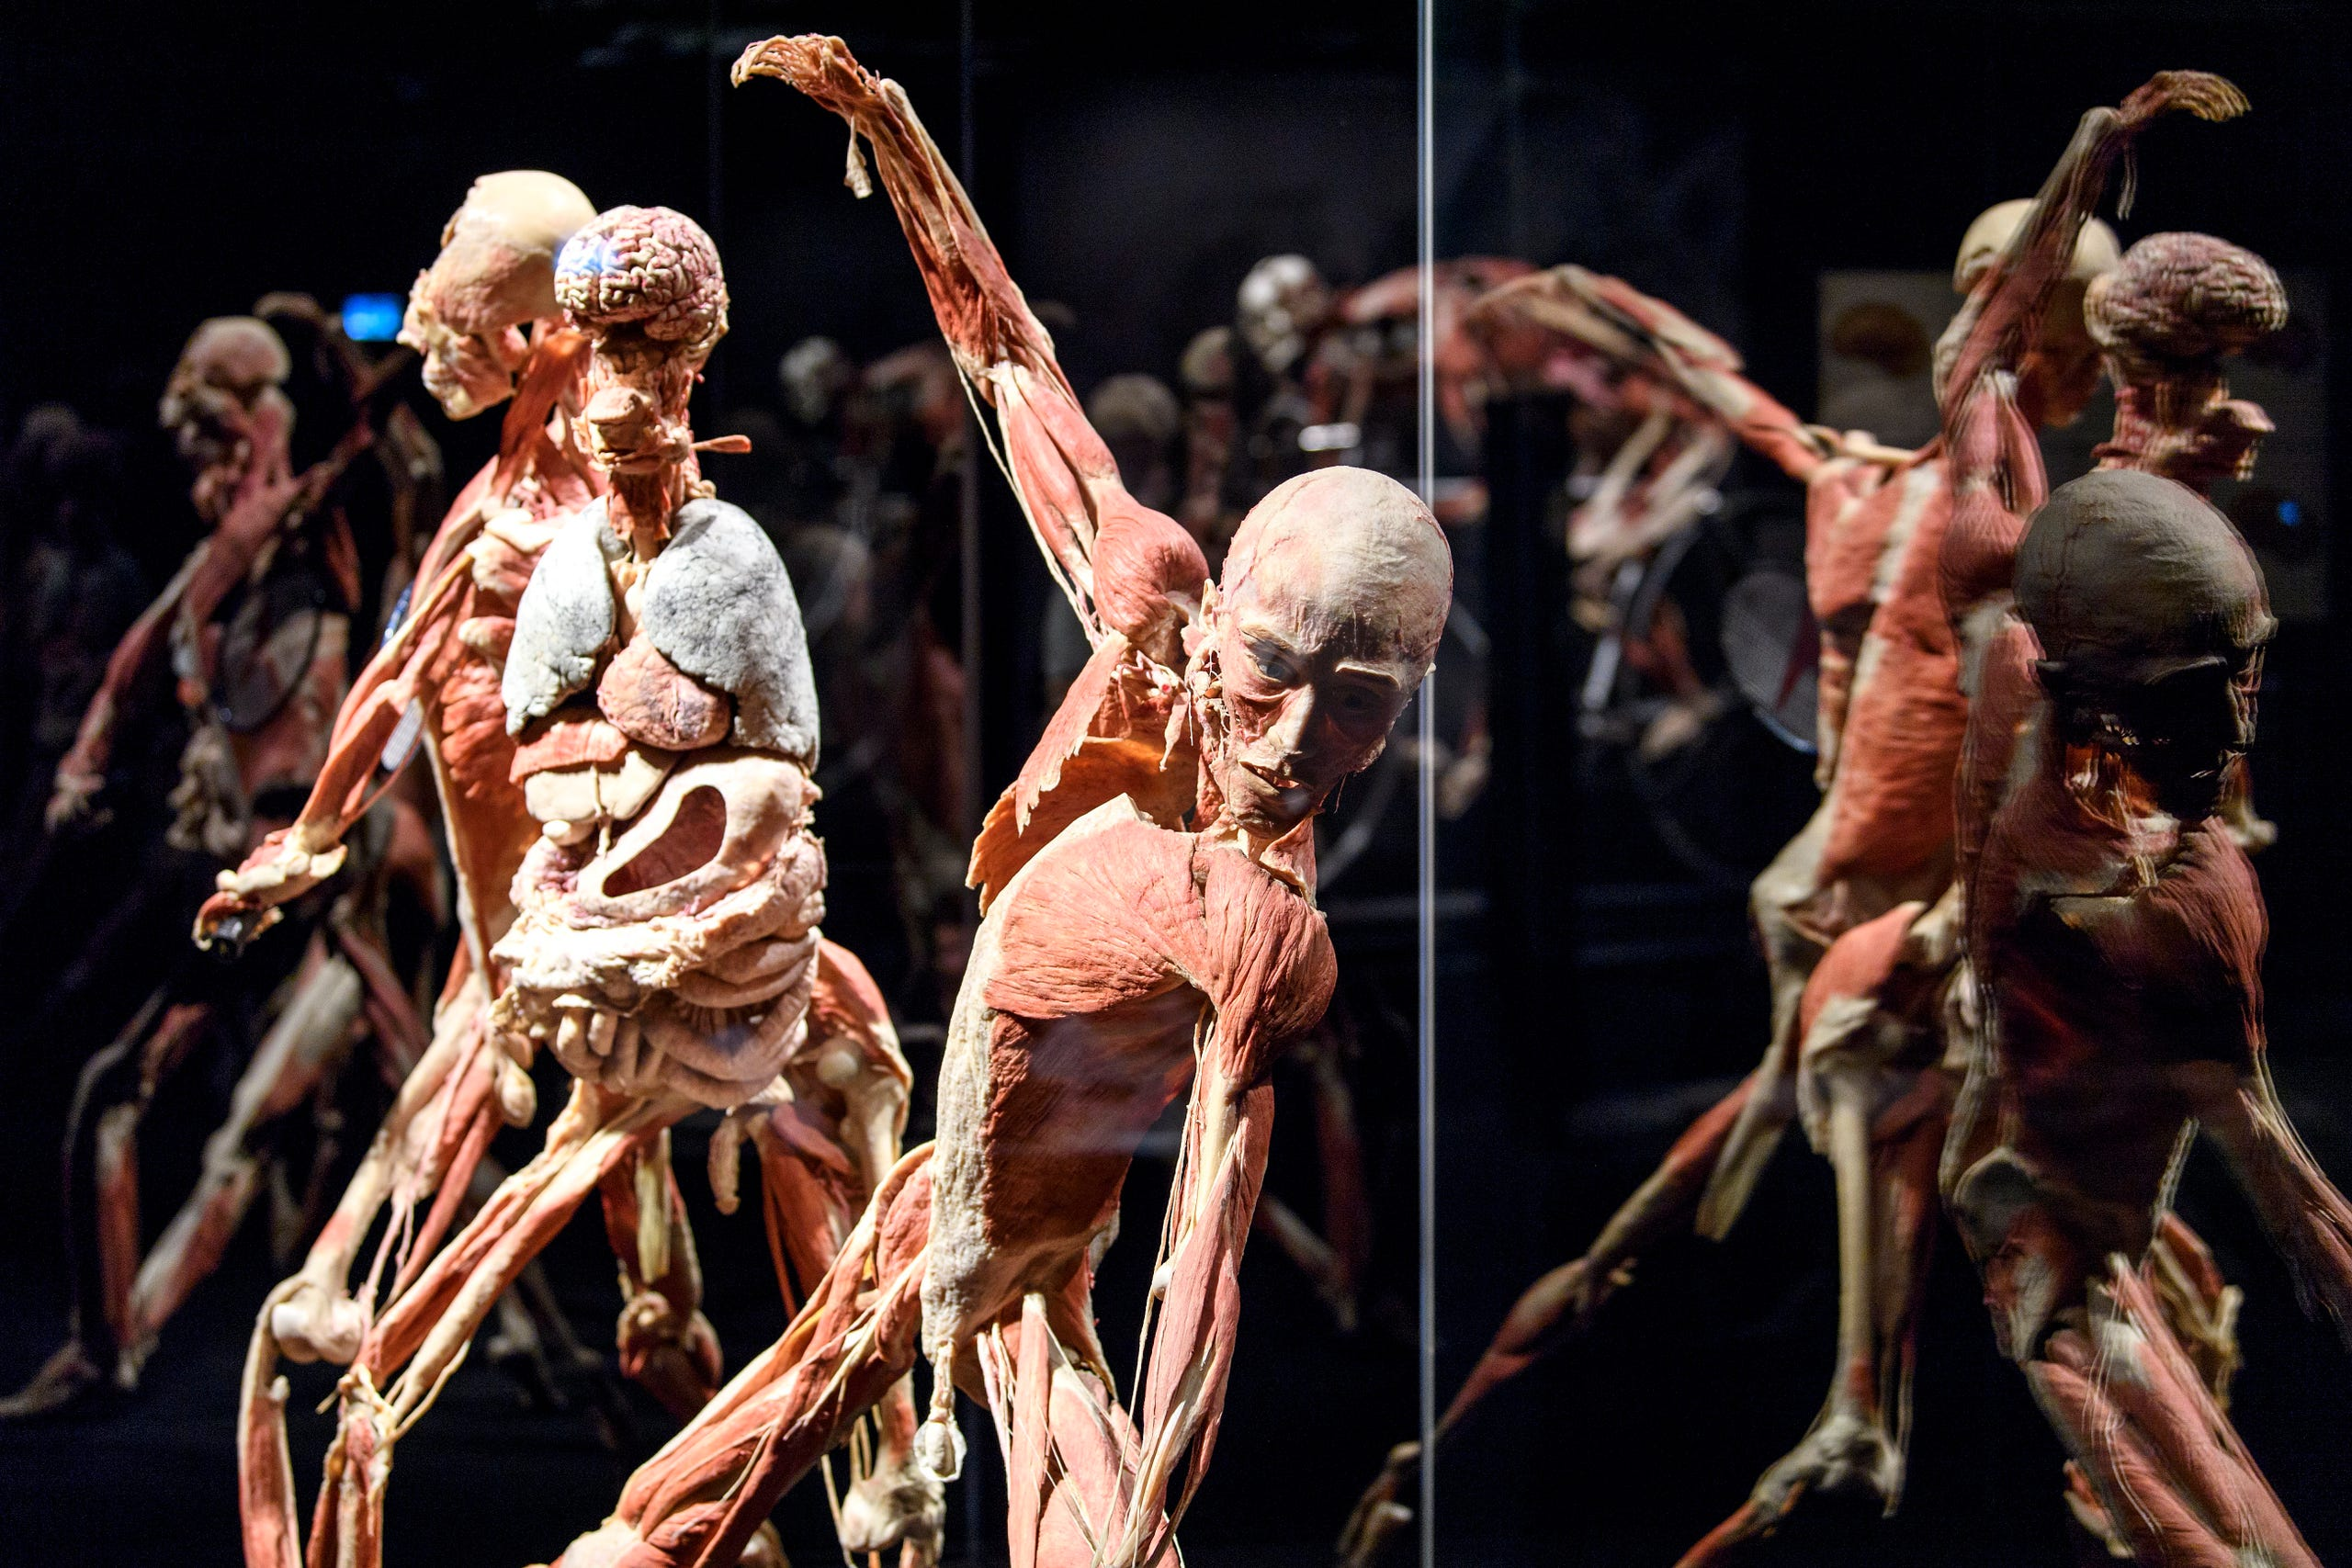 The Amazing Body Worlds And The Cycle Of Life Exhibition